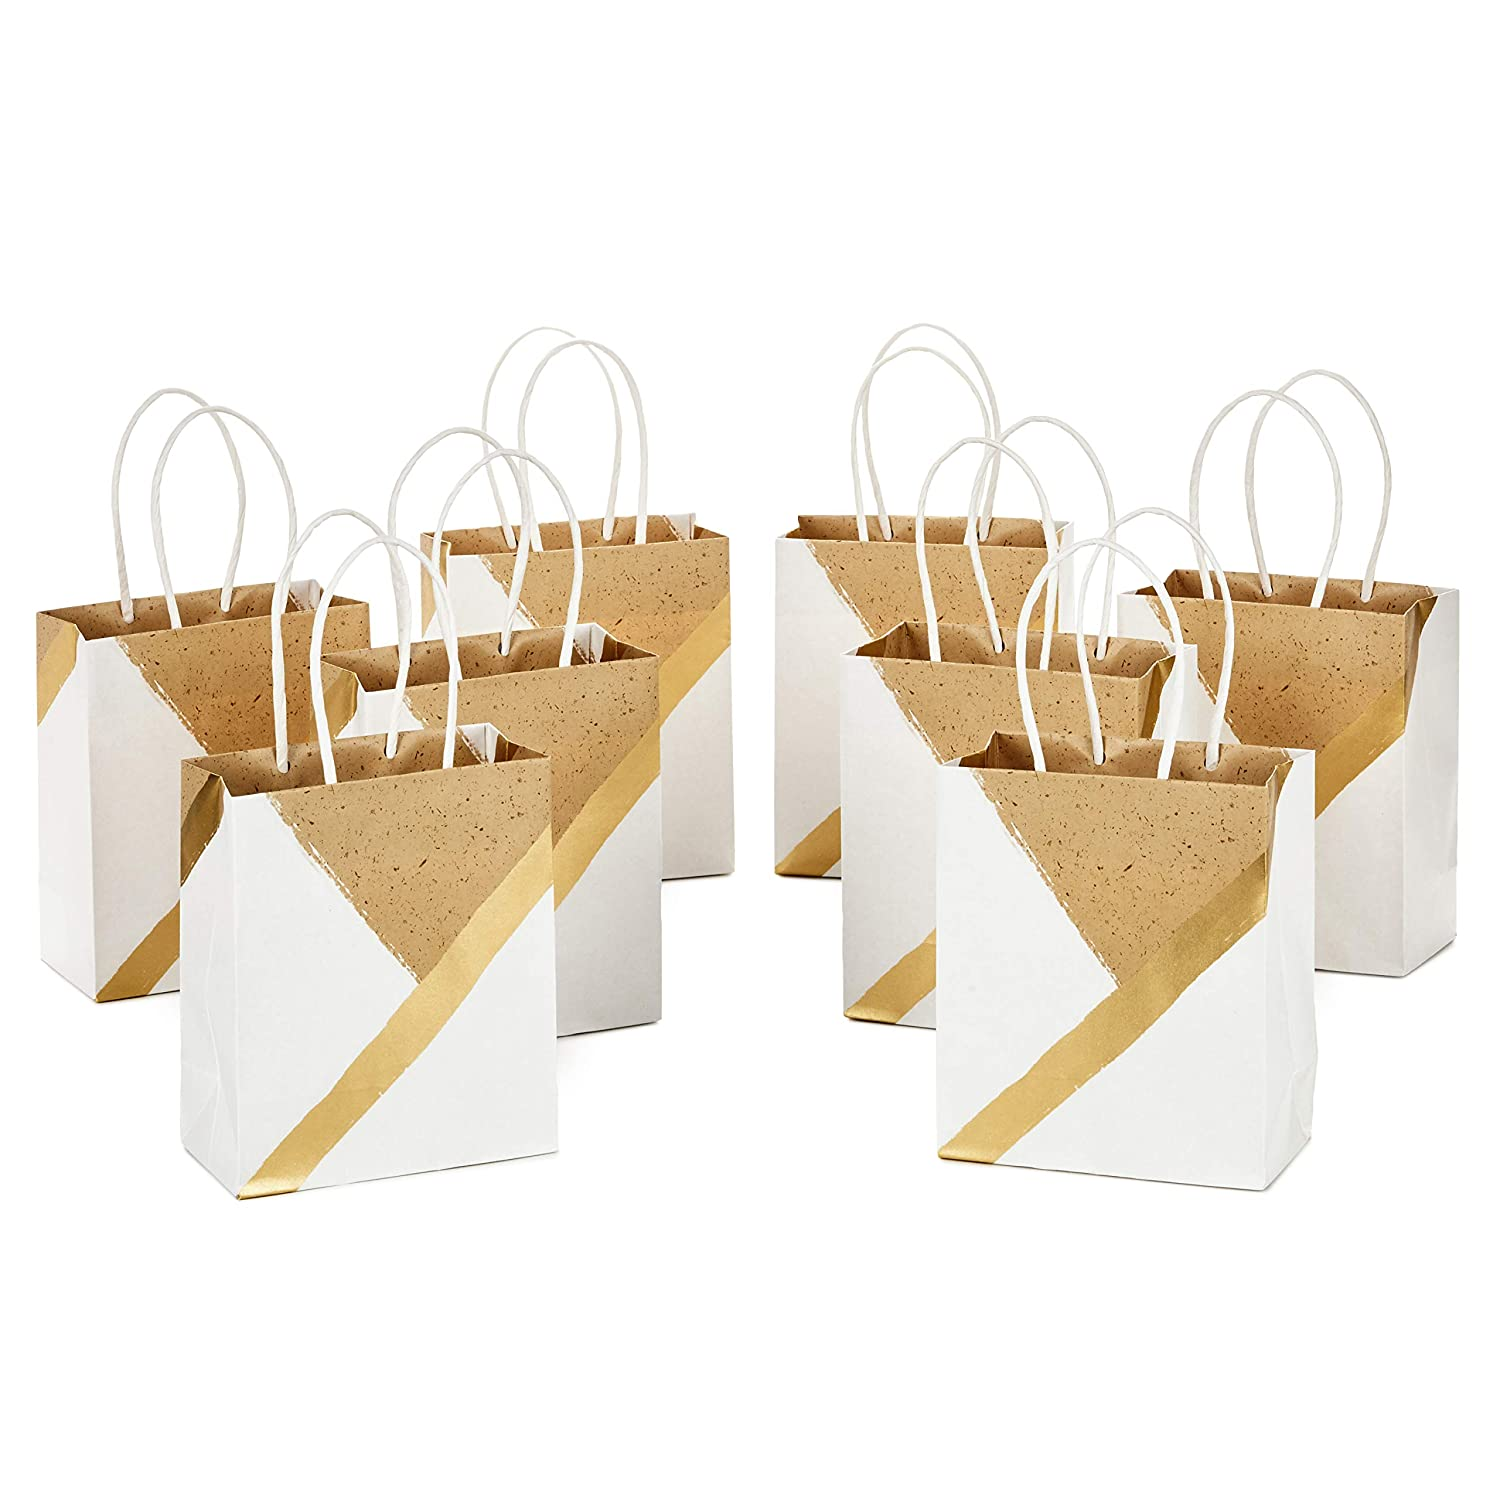 Pack of 8 for Birthdays, Weddings, Christmas, Hanukkah, Baby Showers, Bridal Showers and More White and Kraft Hallmark 6 Small Paper Gift Bags